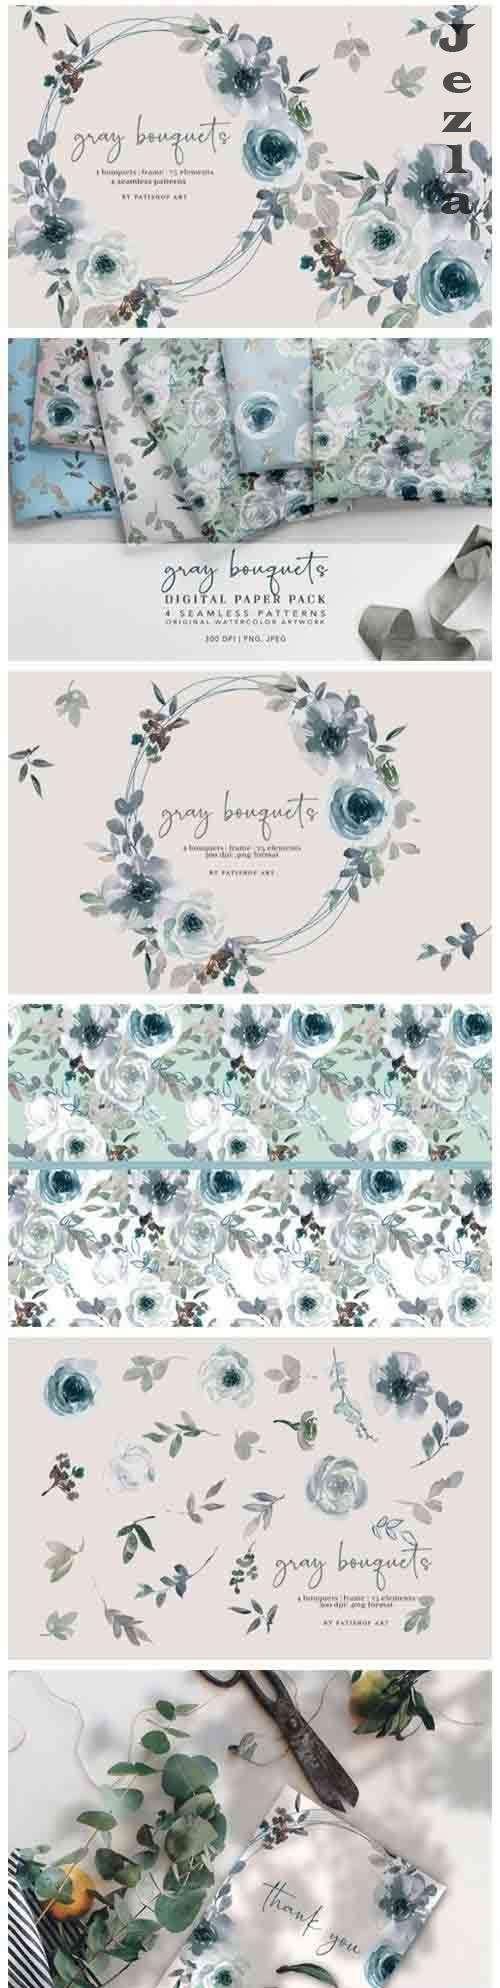 Gray and White Watercolor Floral Clipart and Pattern Set - 749038